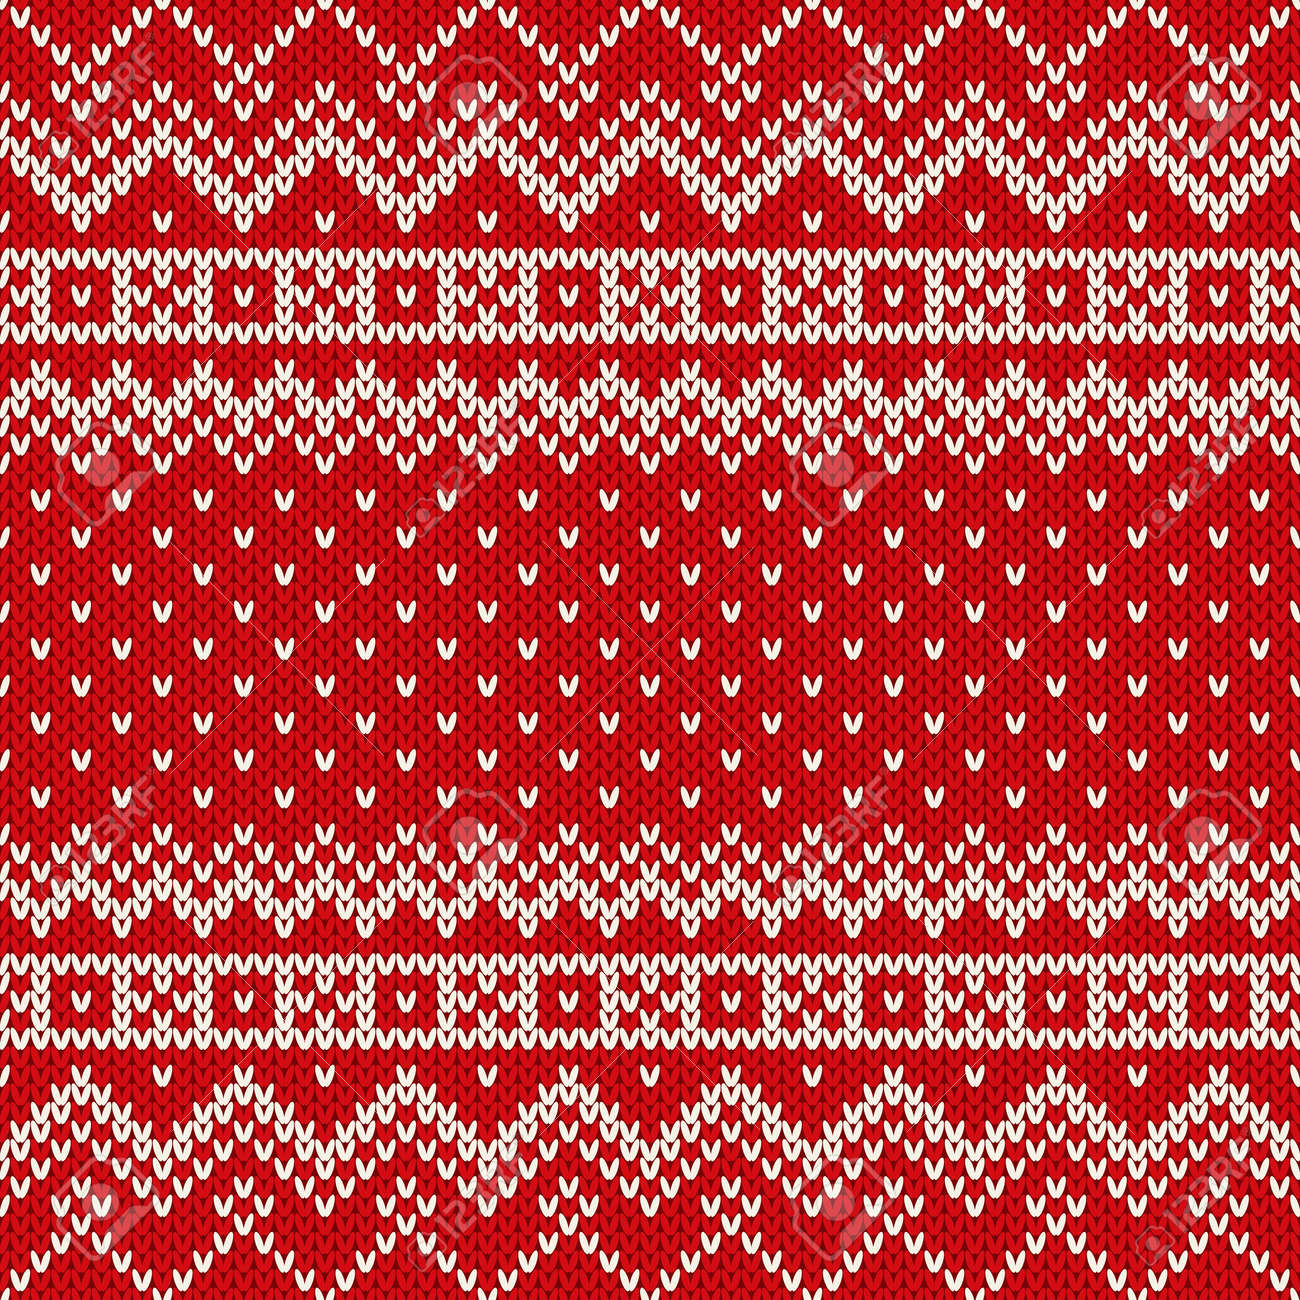 c9baf9b3192e14 Nordic traditional fair isle style seamless knitted pattern stock vector  jpg 1300x1300 Red fair isle pattern